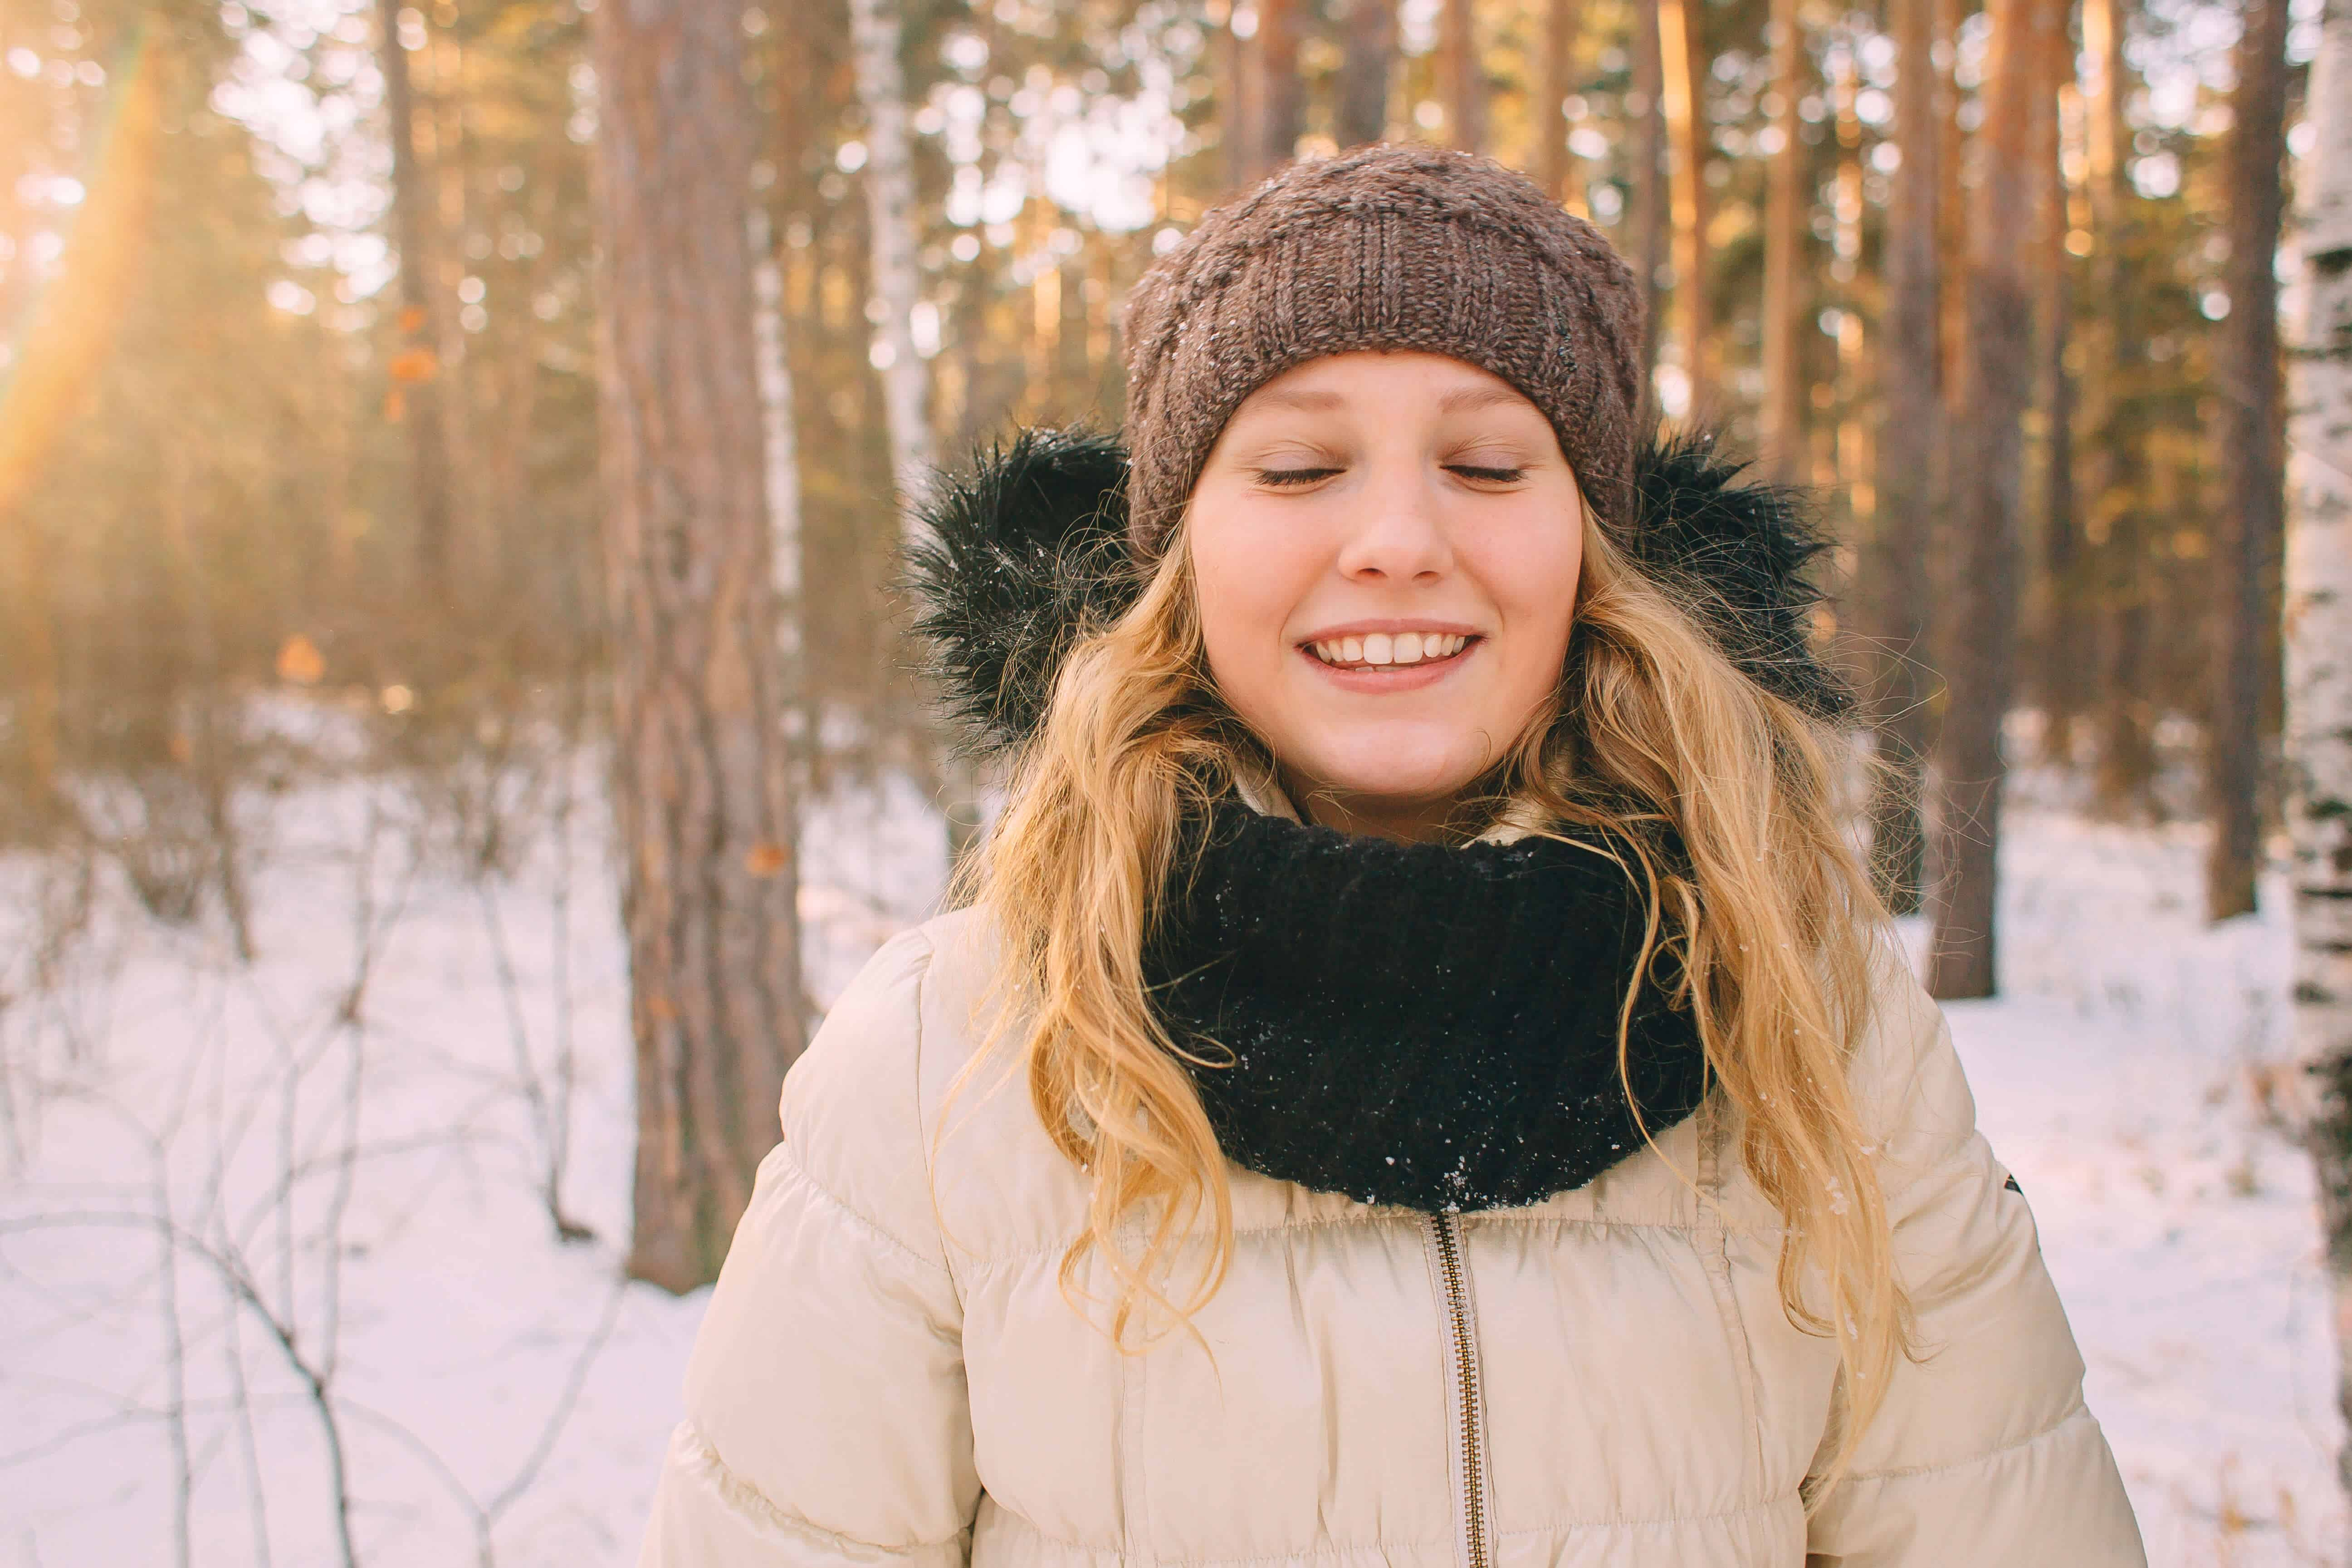 Happy Woman in Snowy Forrest